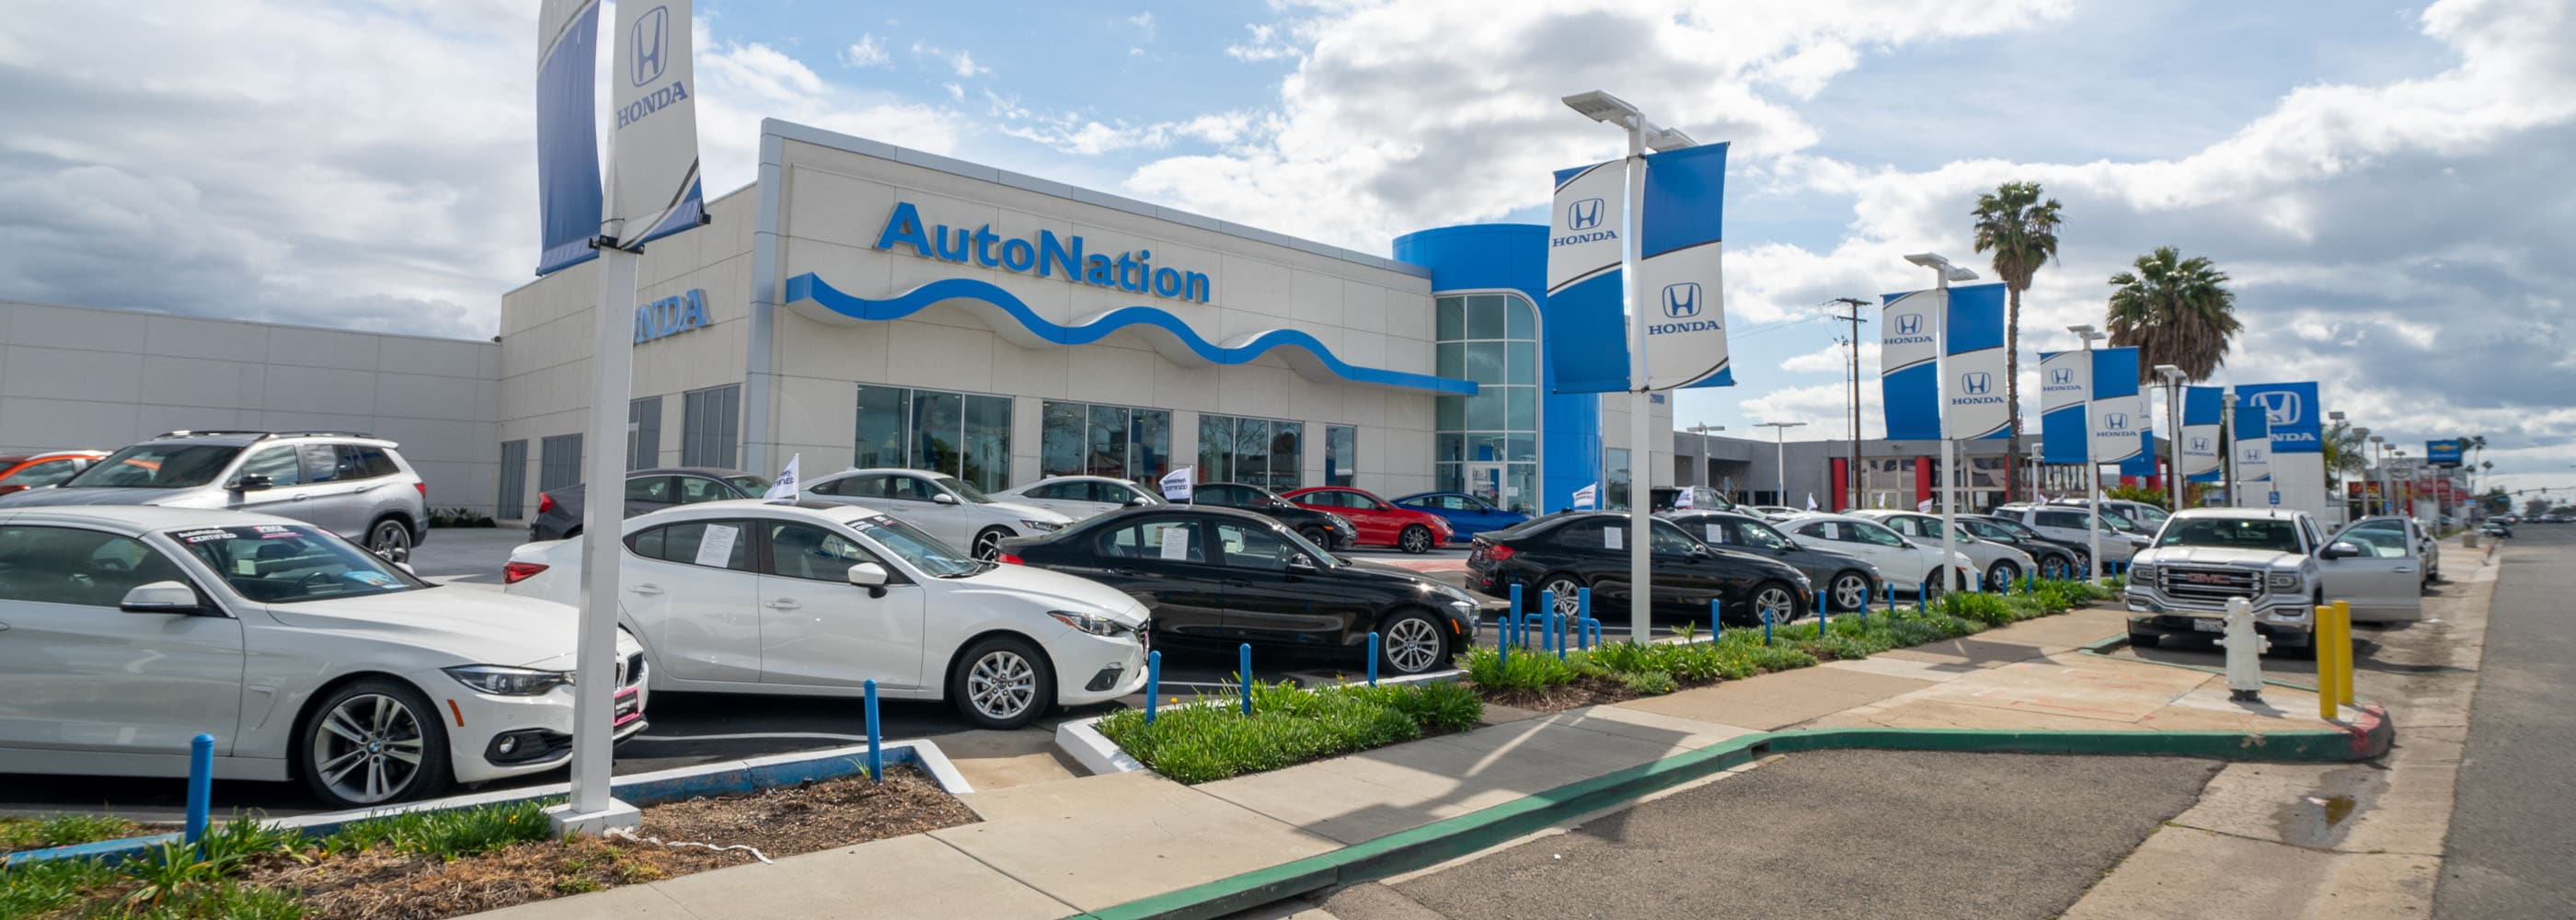 Autonation Honda Dealer In Costa Mesa Ca Autonation Honda Costa Mesa